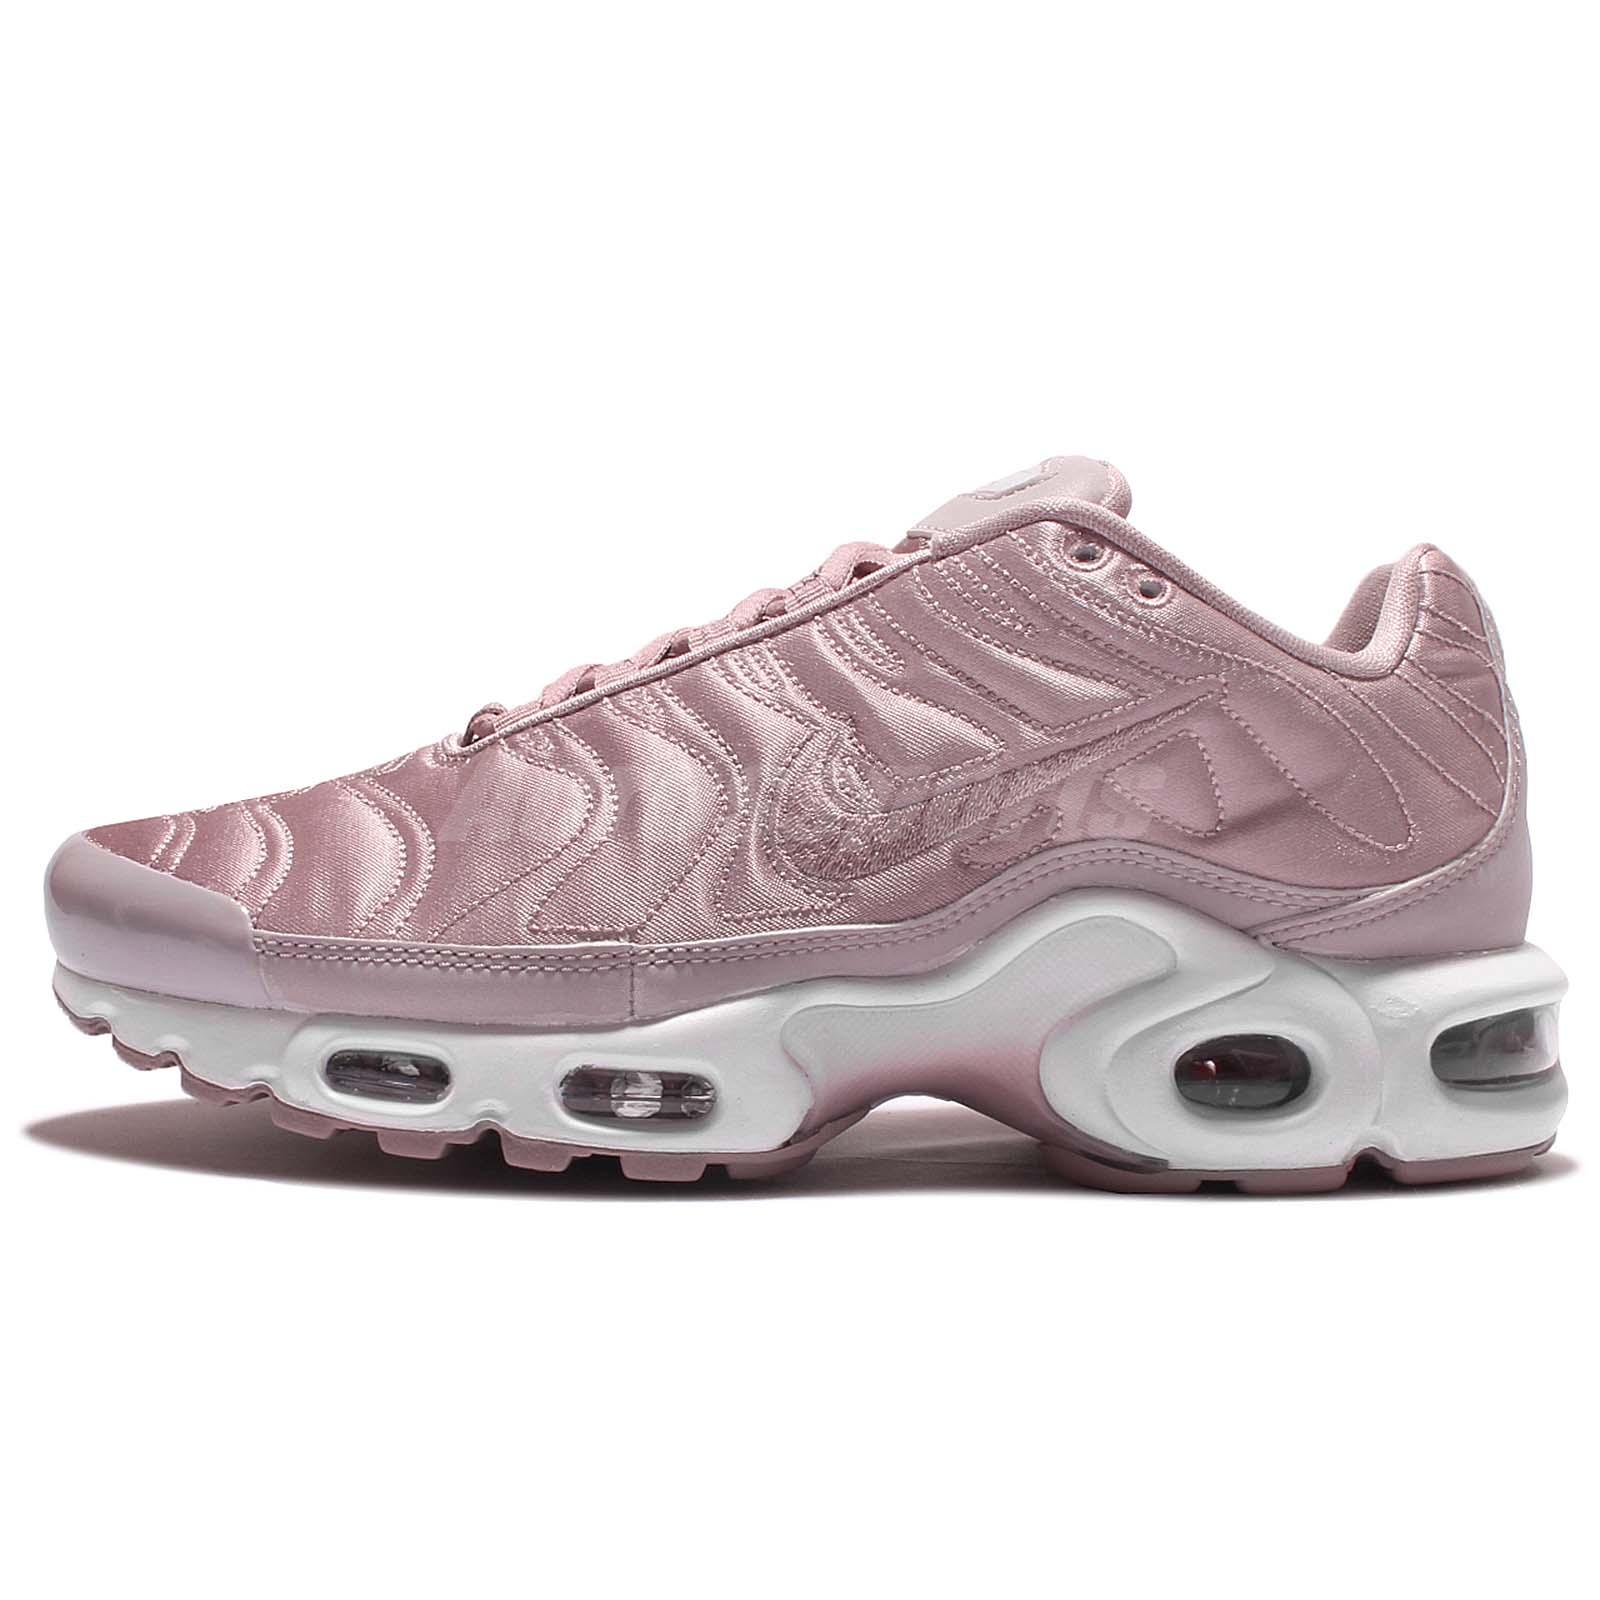 nike air max plus satin rose nike air max store. Black Bedroom Furniture Sets. Home Design Ideas